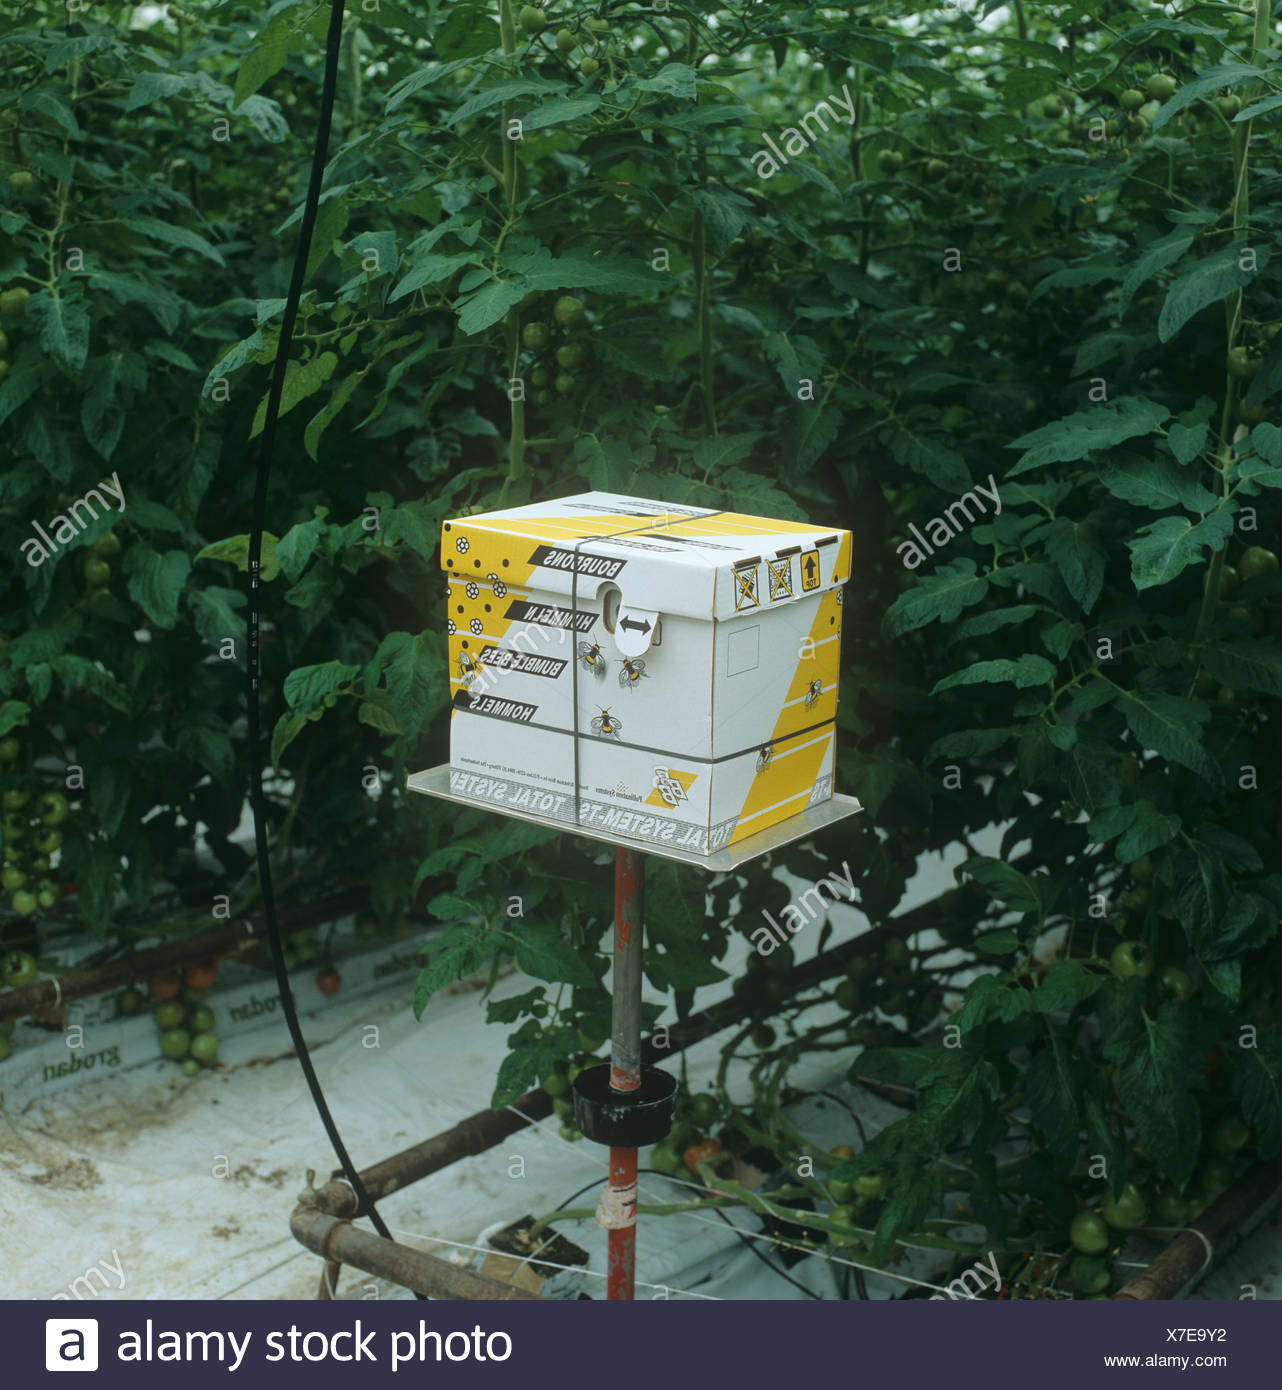 Bumblebee box in a commercial tomato glasshouse - Stock Image